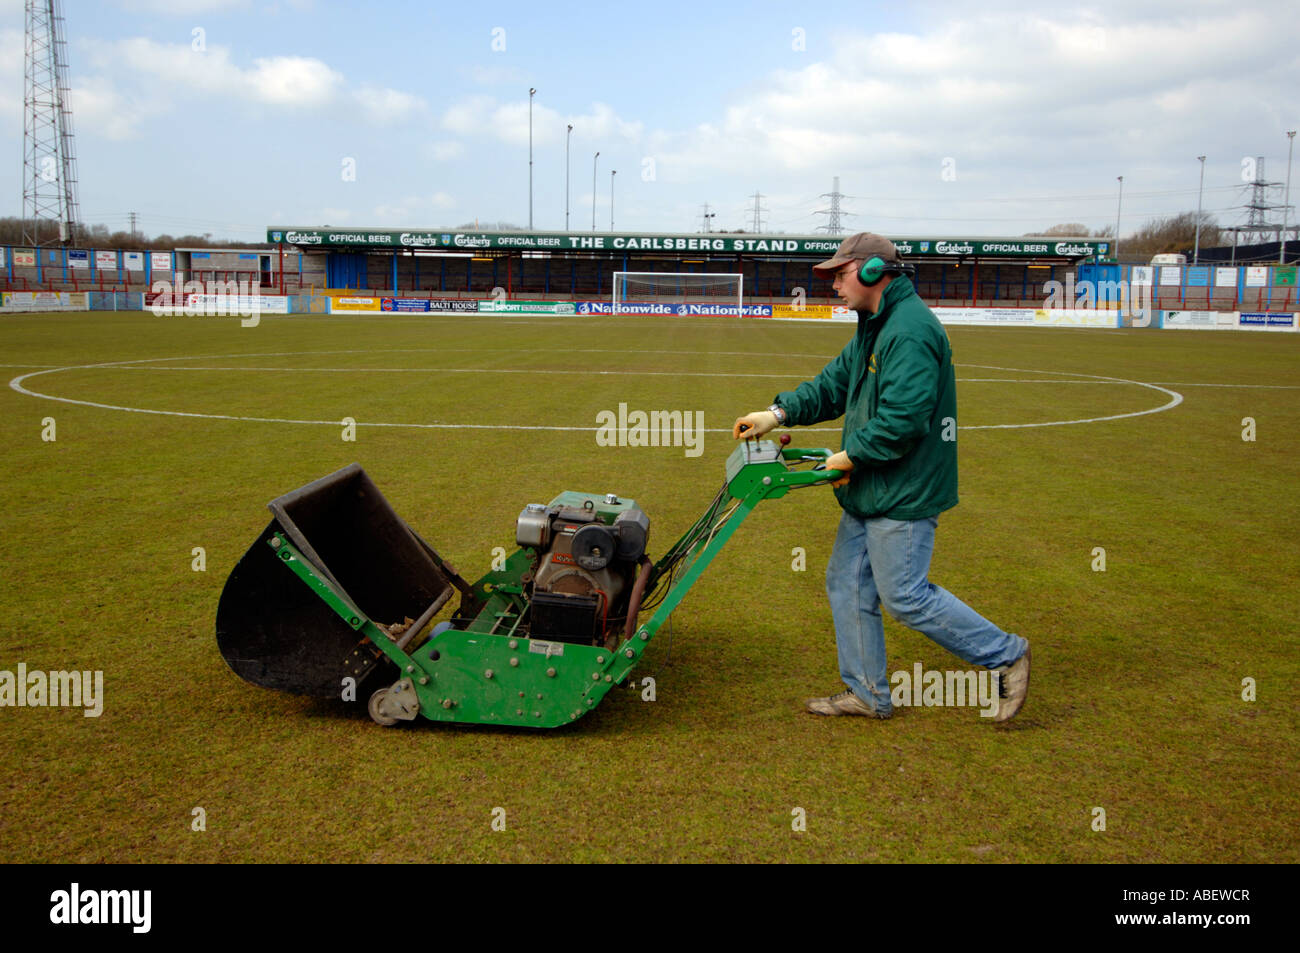 Groundsman mowing a football ground pitch, Britain UK - Stock Image